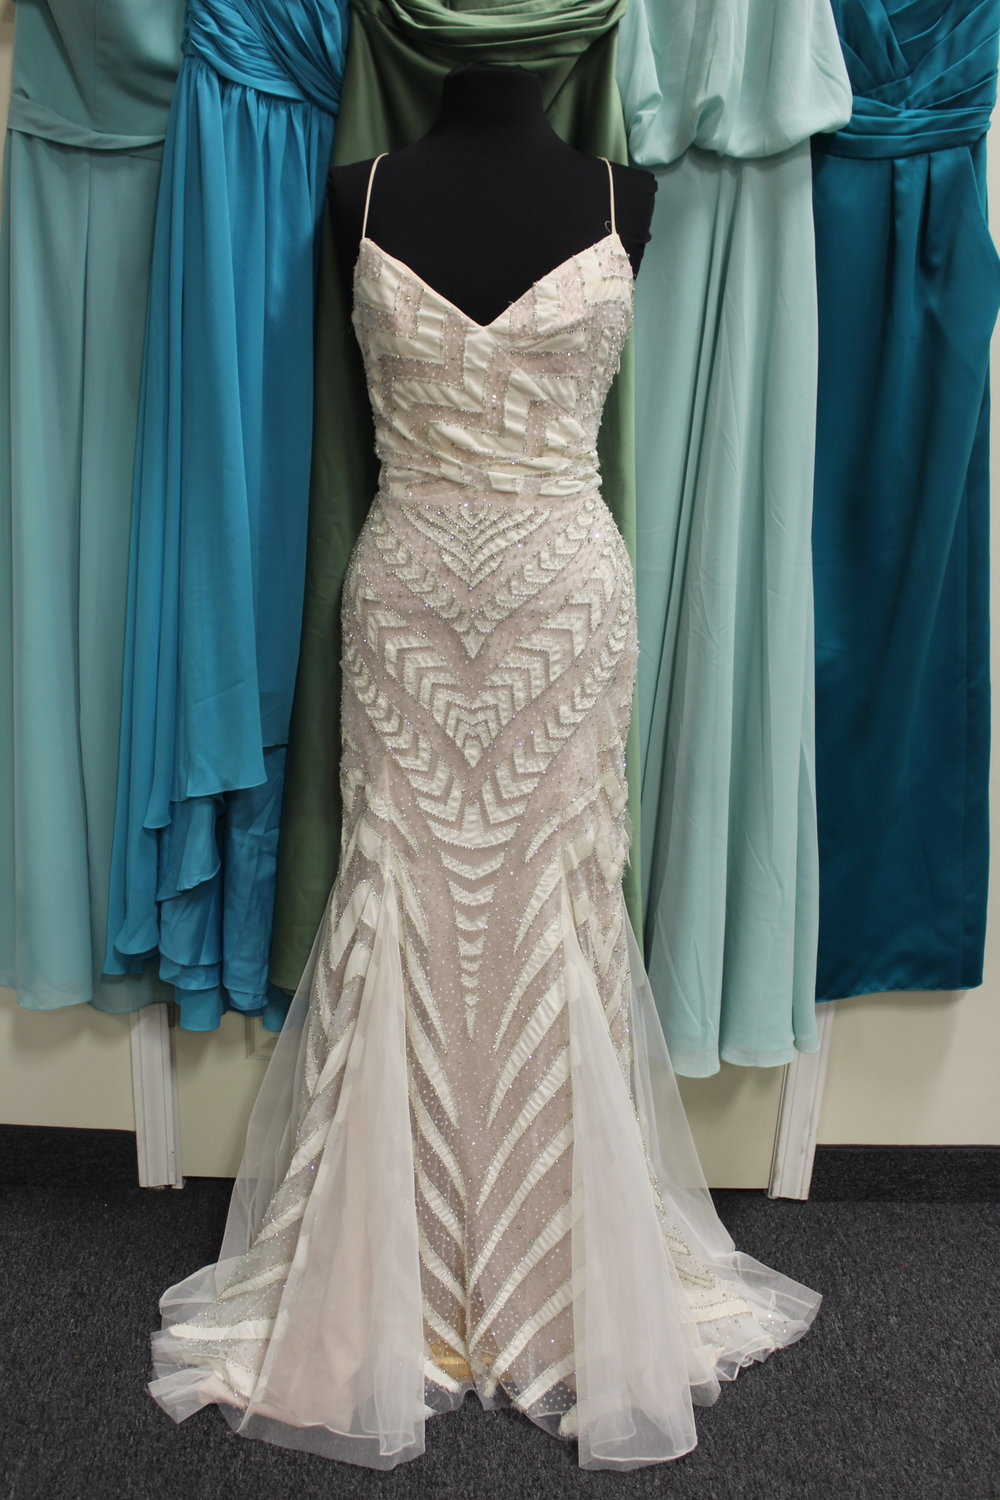 Hayley Paige - 11306-3514Location: WoodburySize: 12This dress is brand NEW!Original Retail Price: $5600OUR Price: $2255*This dress is currently half price at $1127*